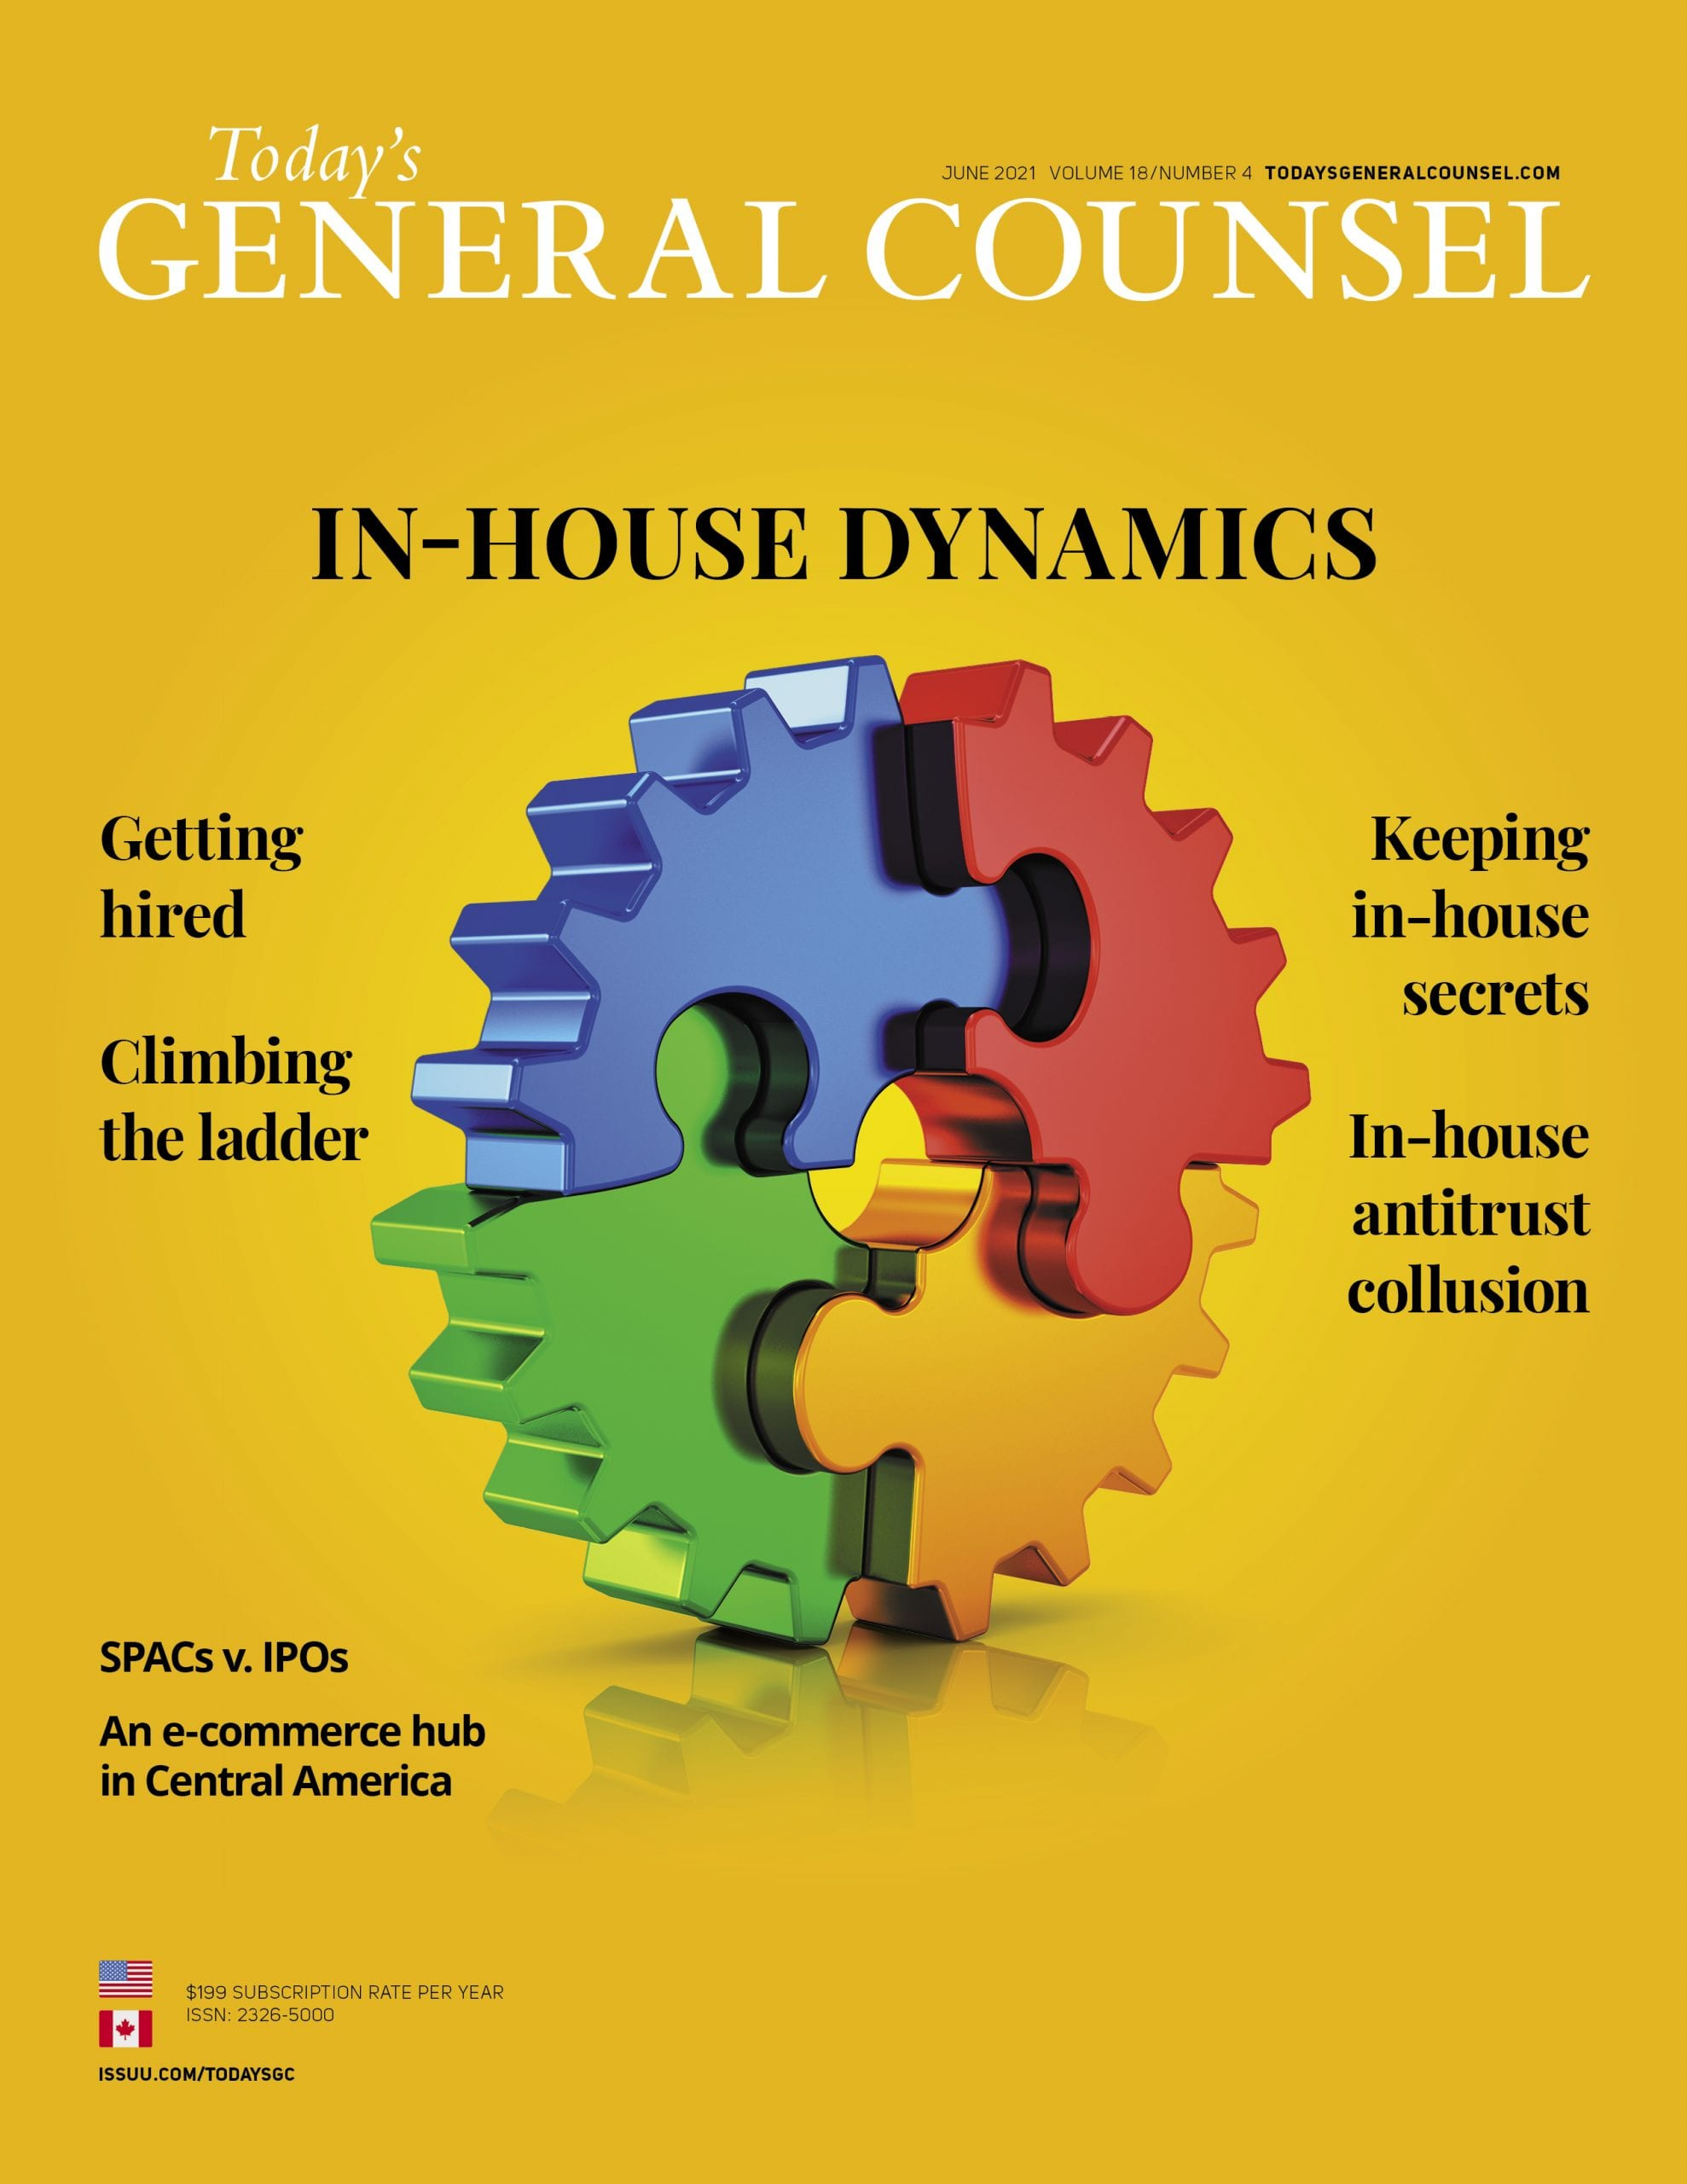 Today's General Counsel June 2021